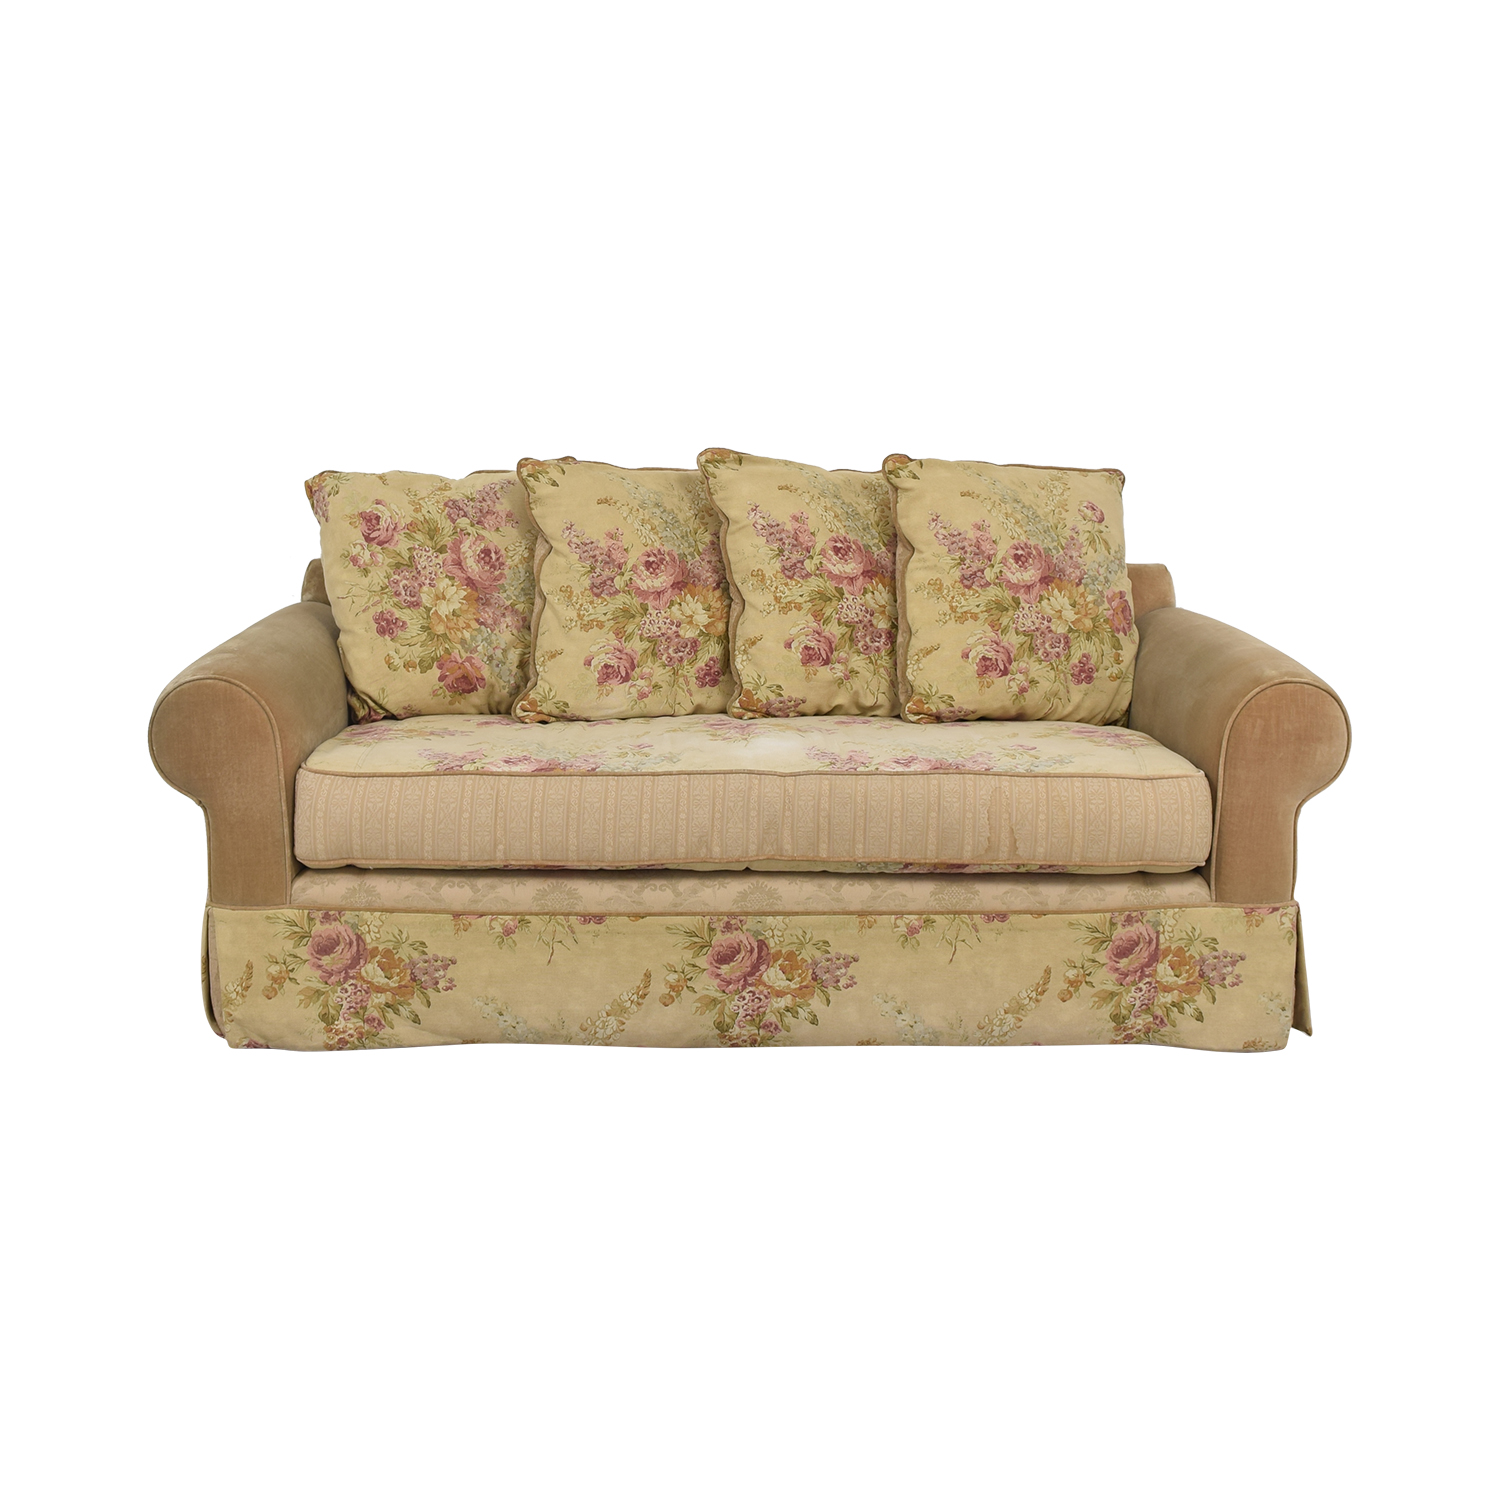 Single Cushion Floral Sofa Classic Sofas